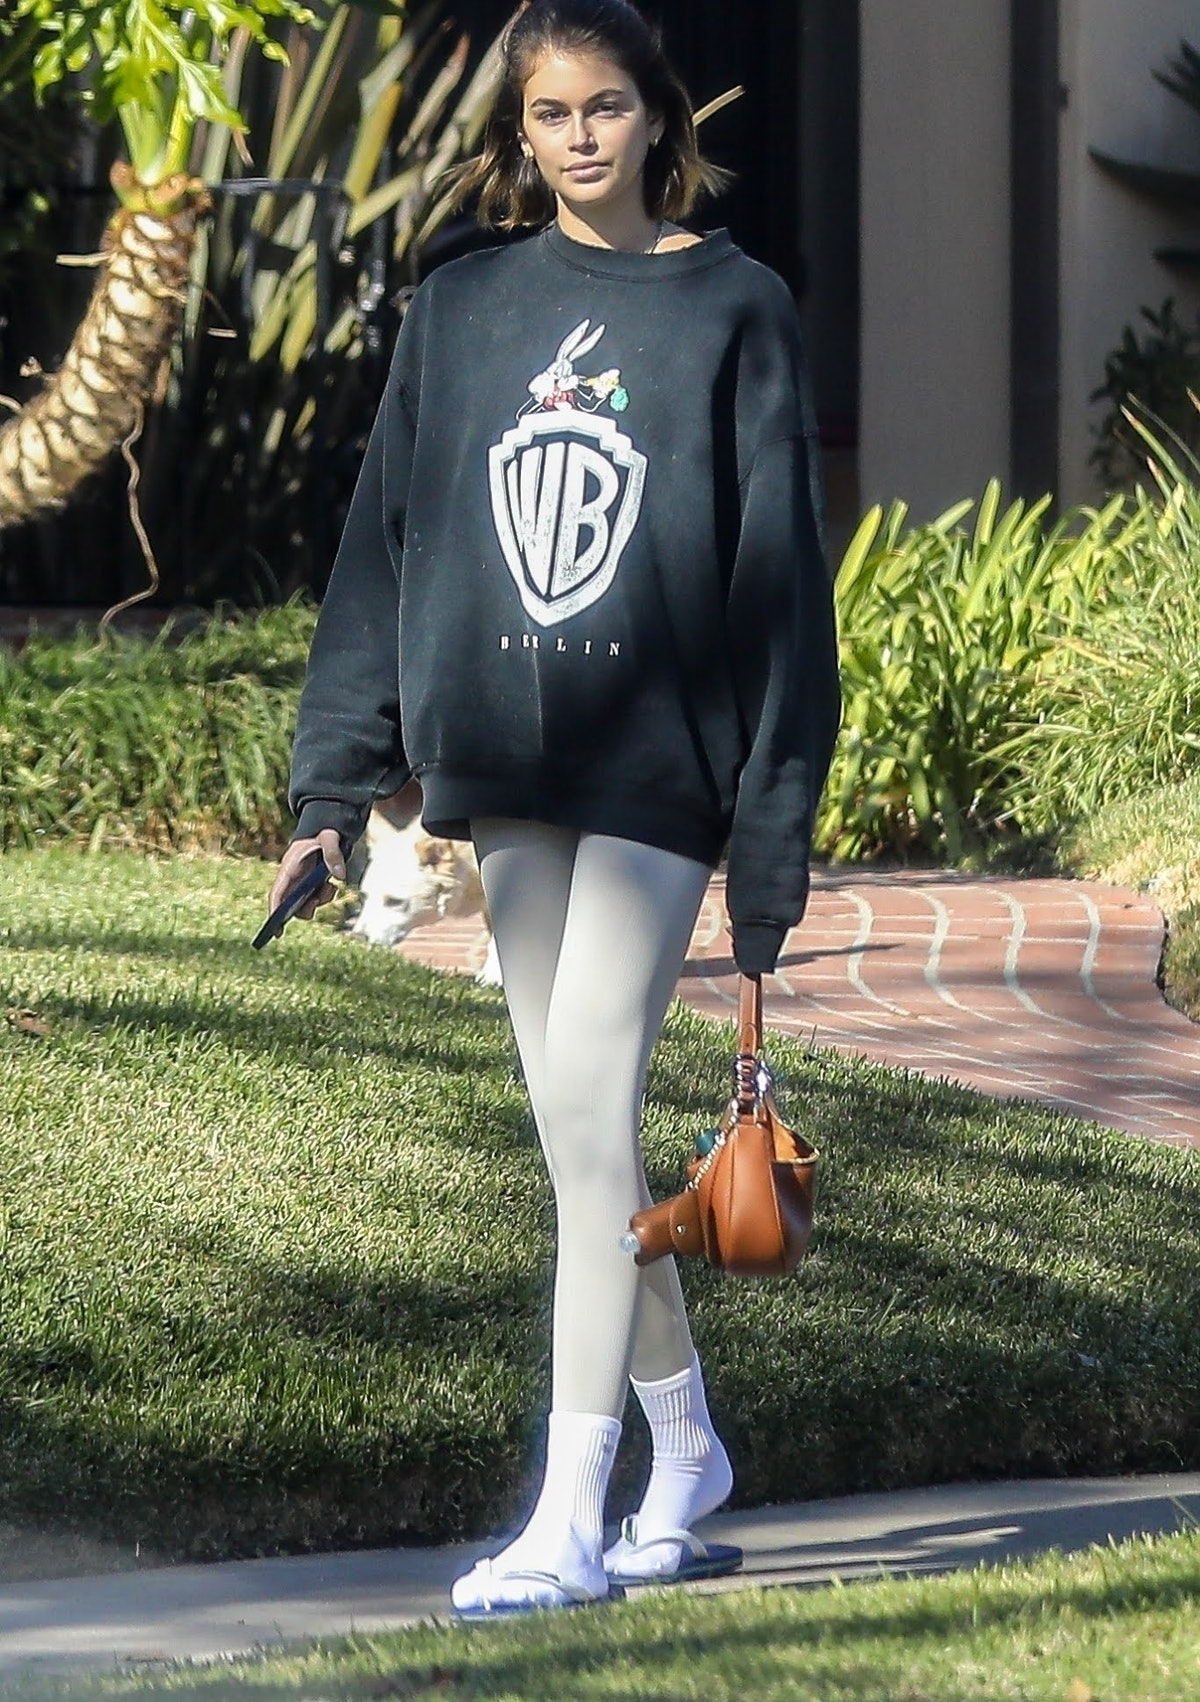 New Hollywood 'IT' couple Kaia Gerber and Jacob Elordi enjoy a walk outside with their dog in Santa ...